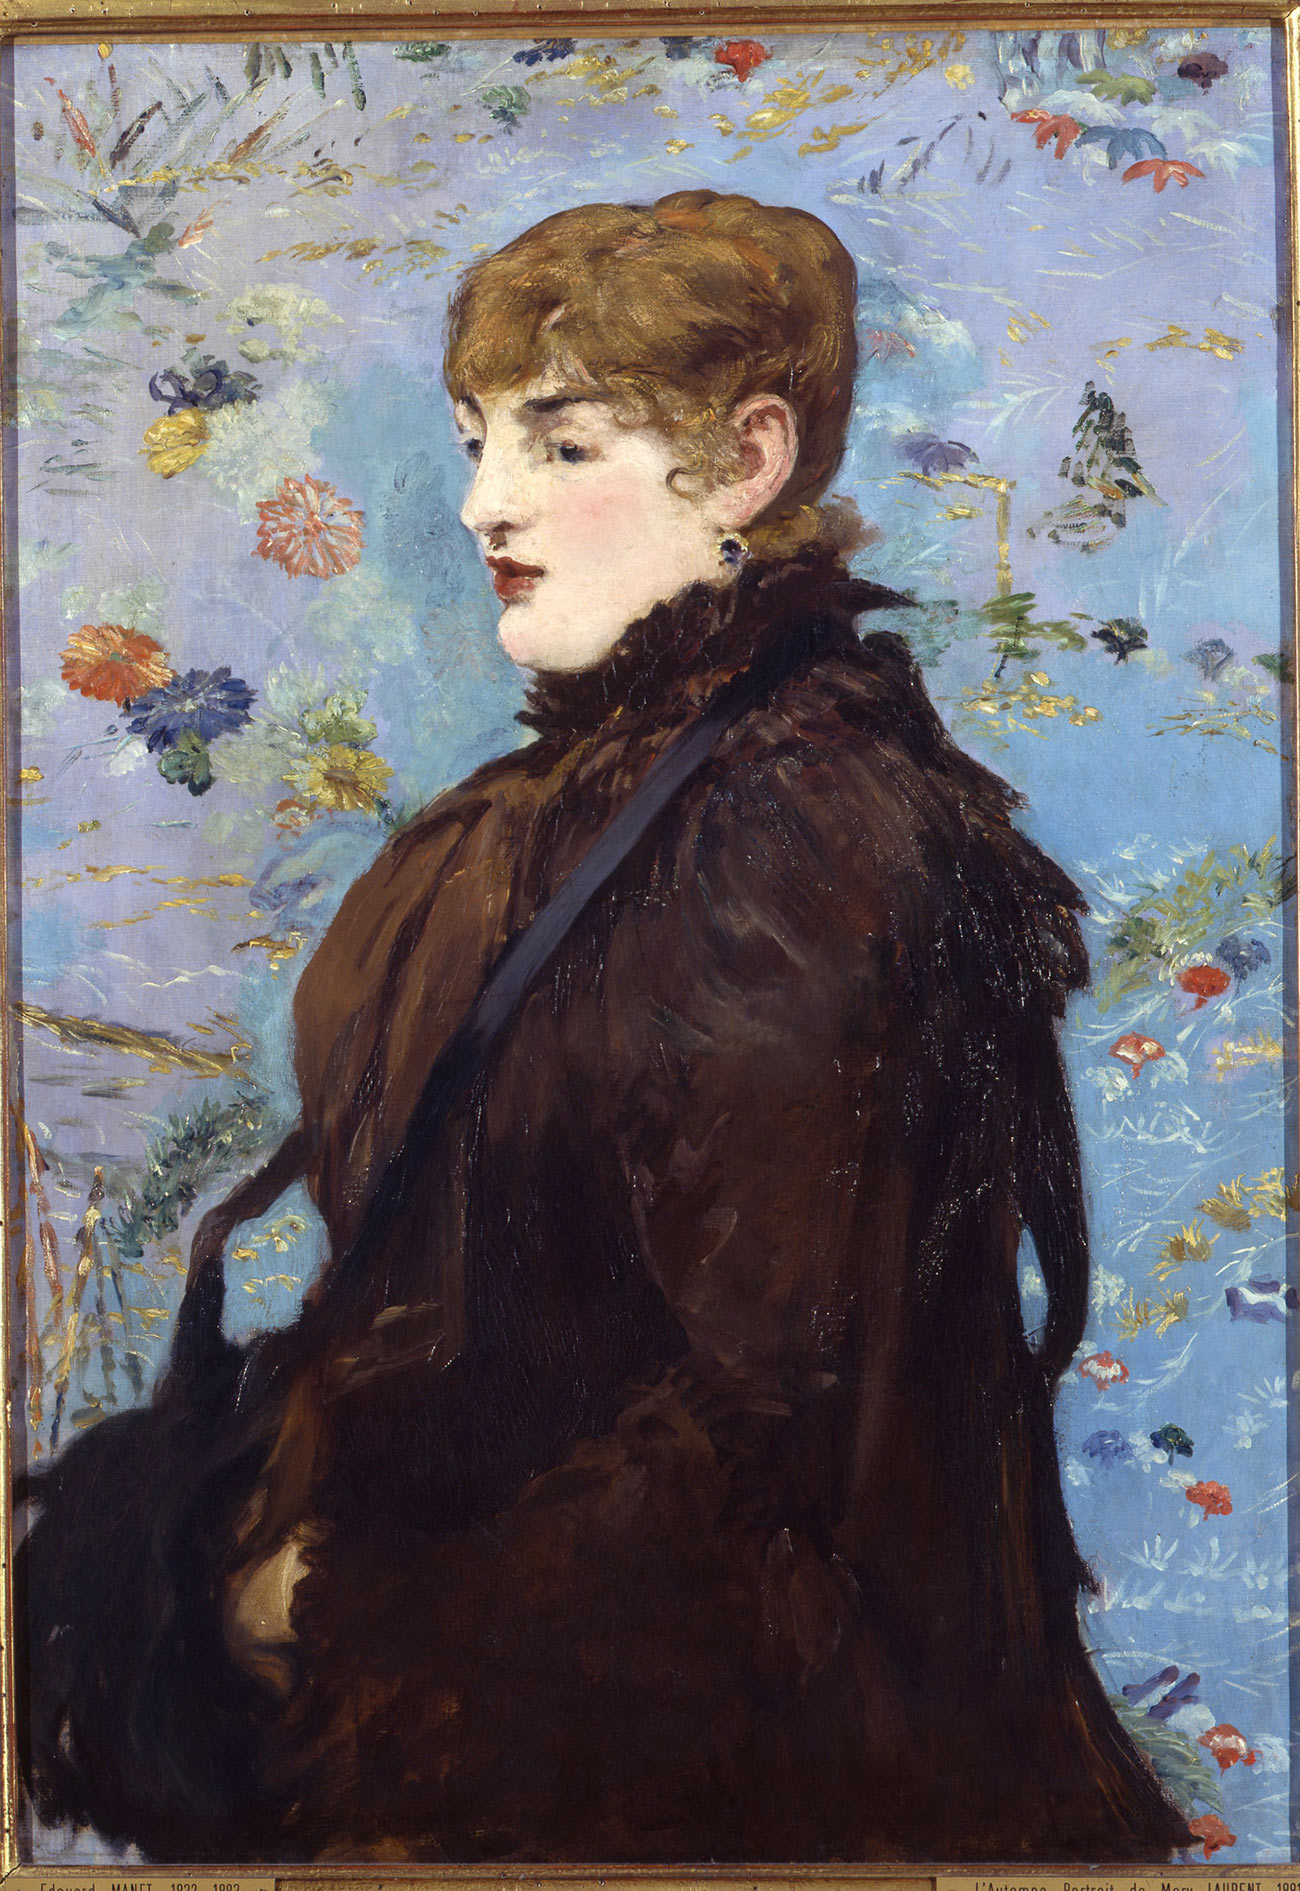 Portrait of a woman looking left, wearing a brown coat.